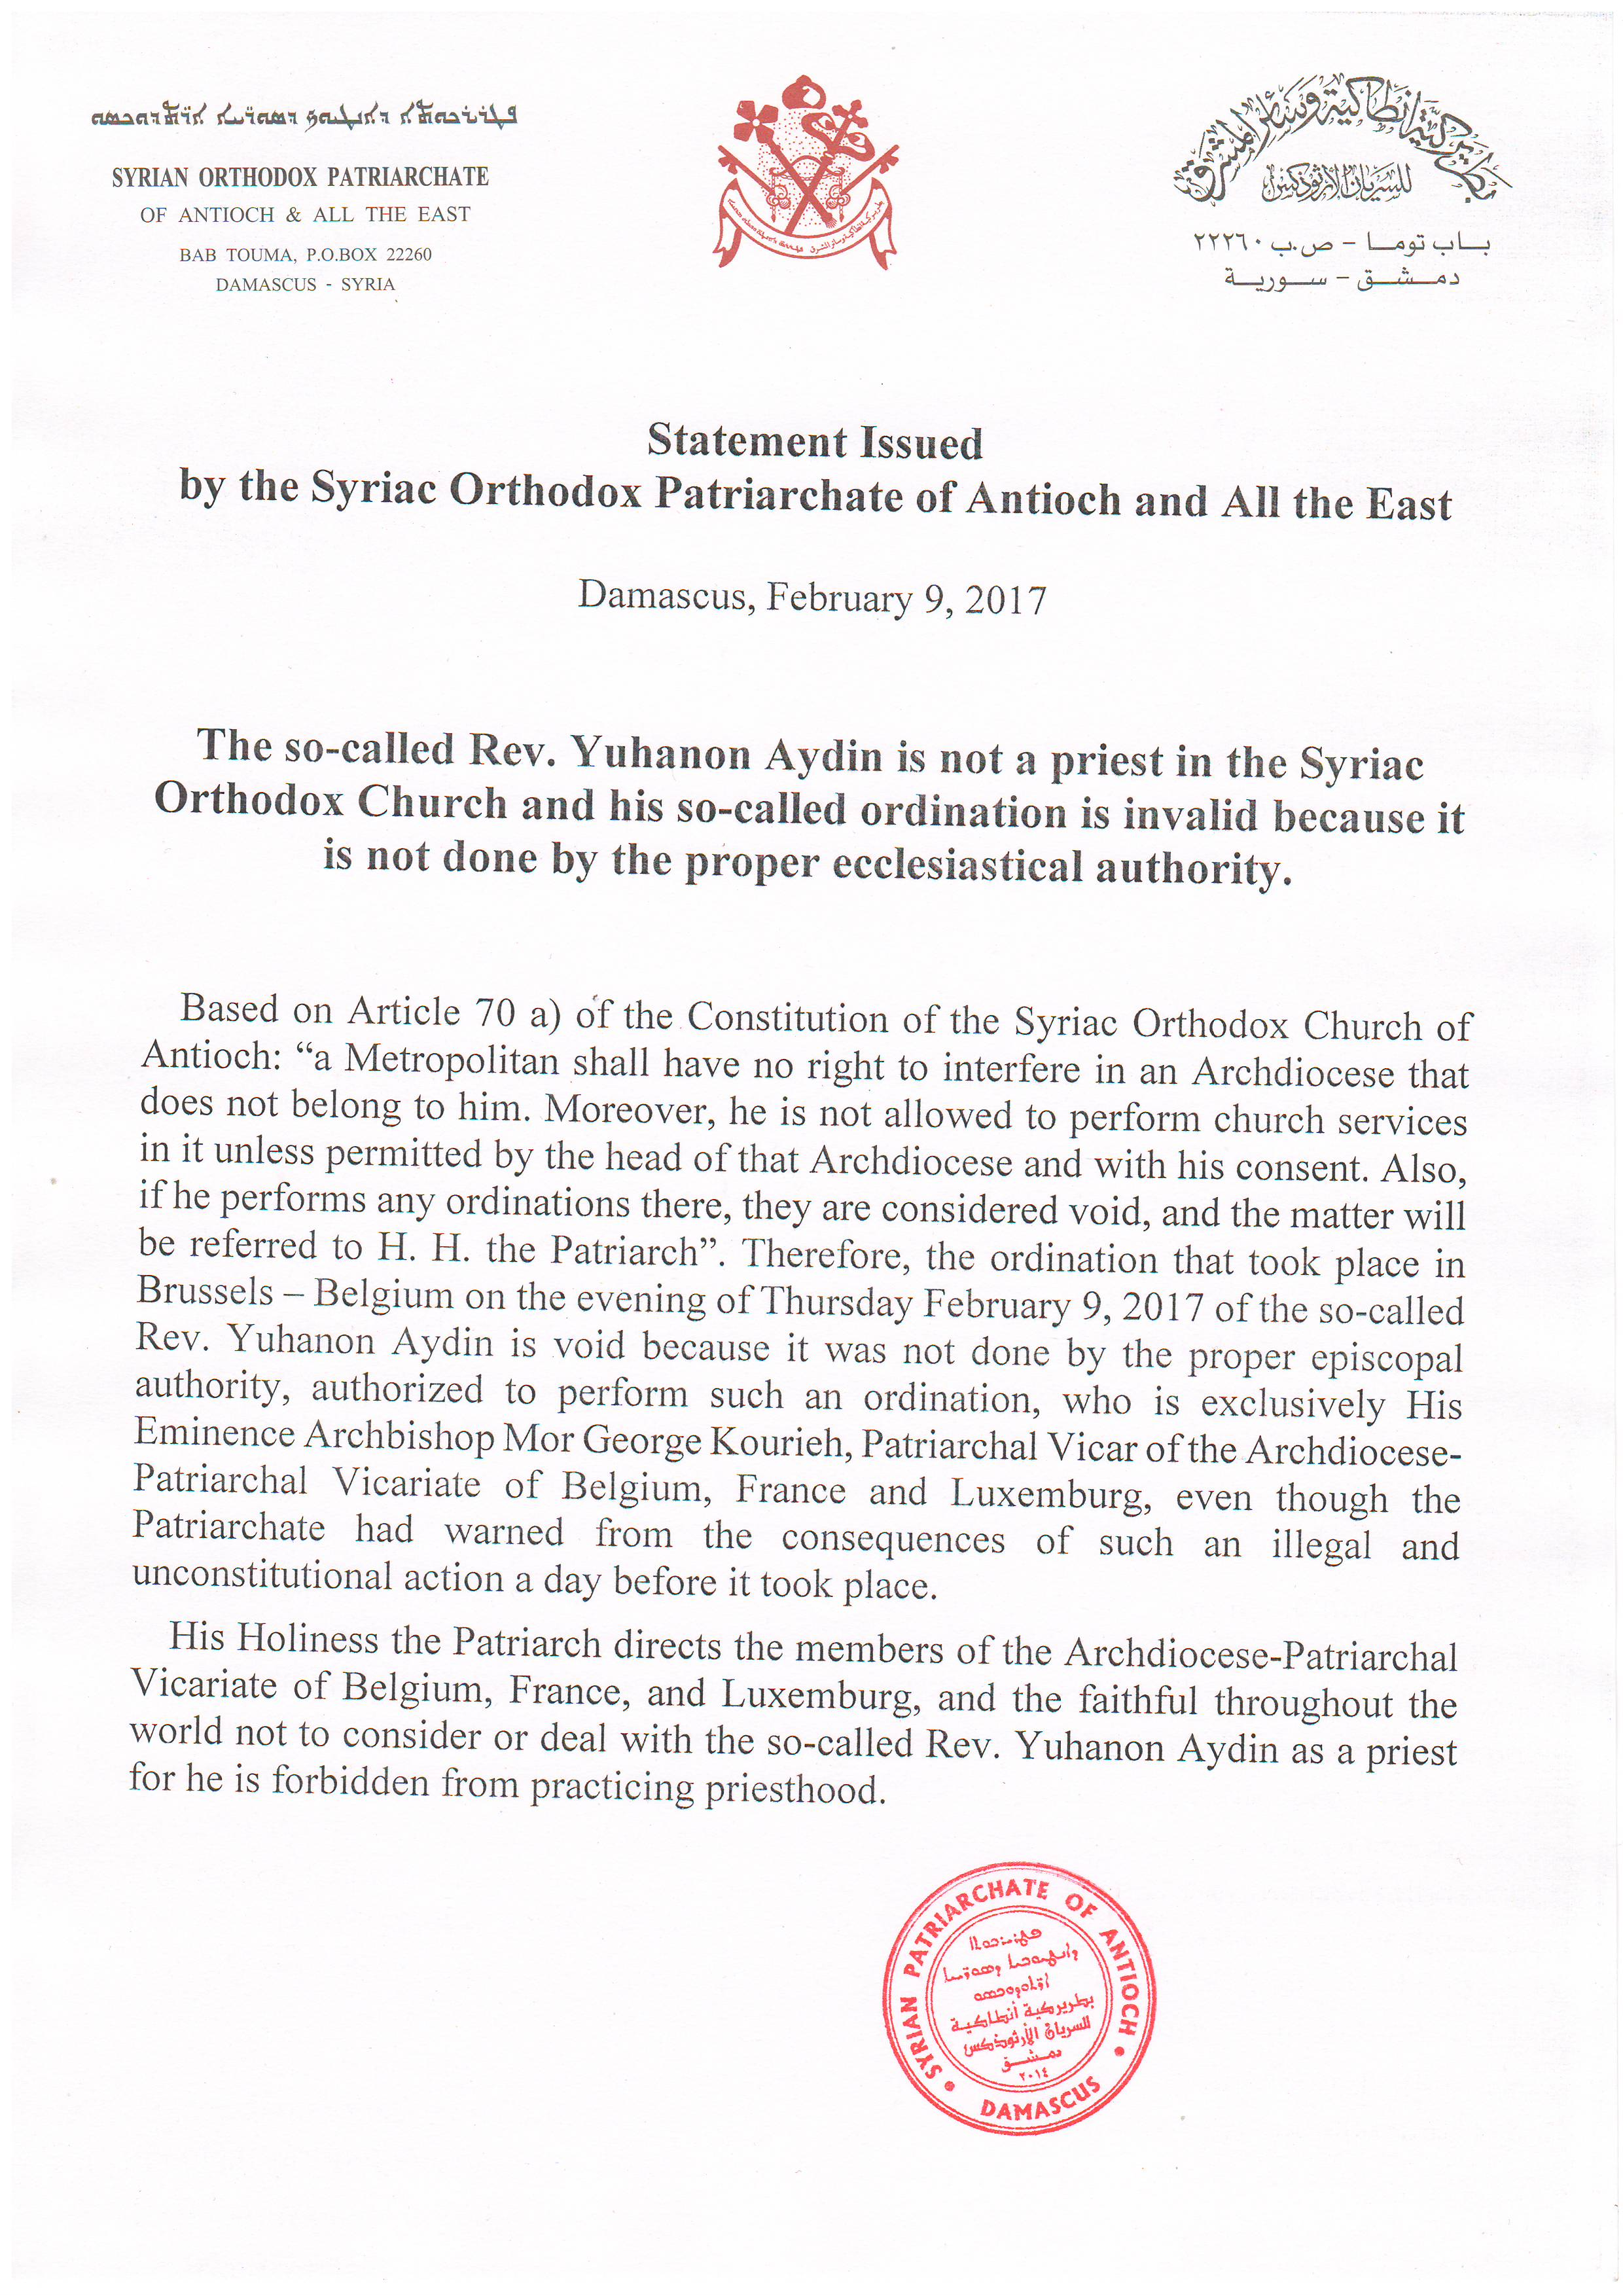 The so-called Rev. Yuhanon Aydin is not a priest in the Syriac Orthodox Church and his so-called ordination is void